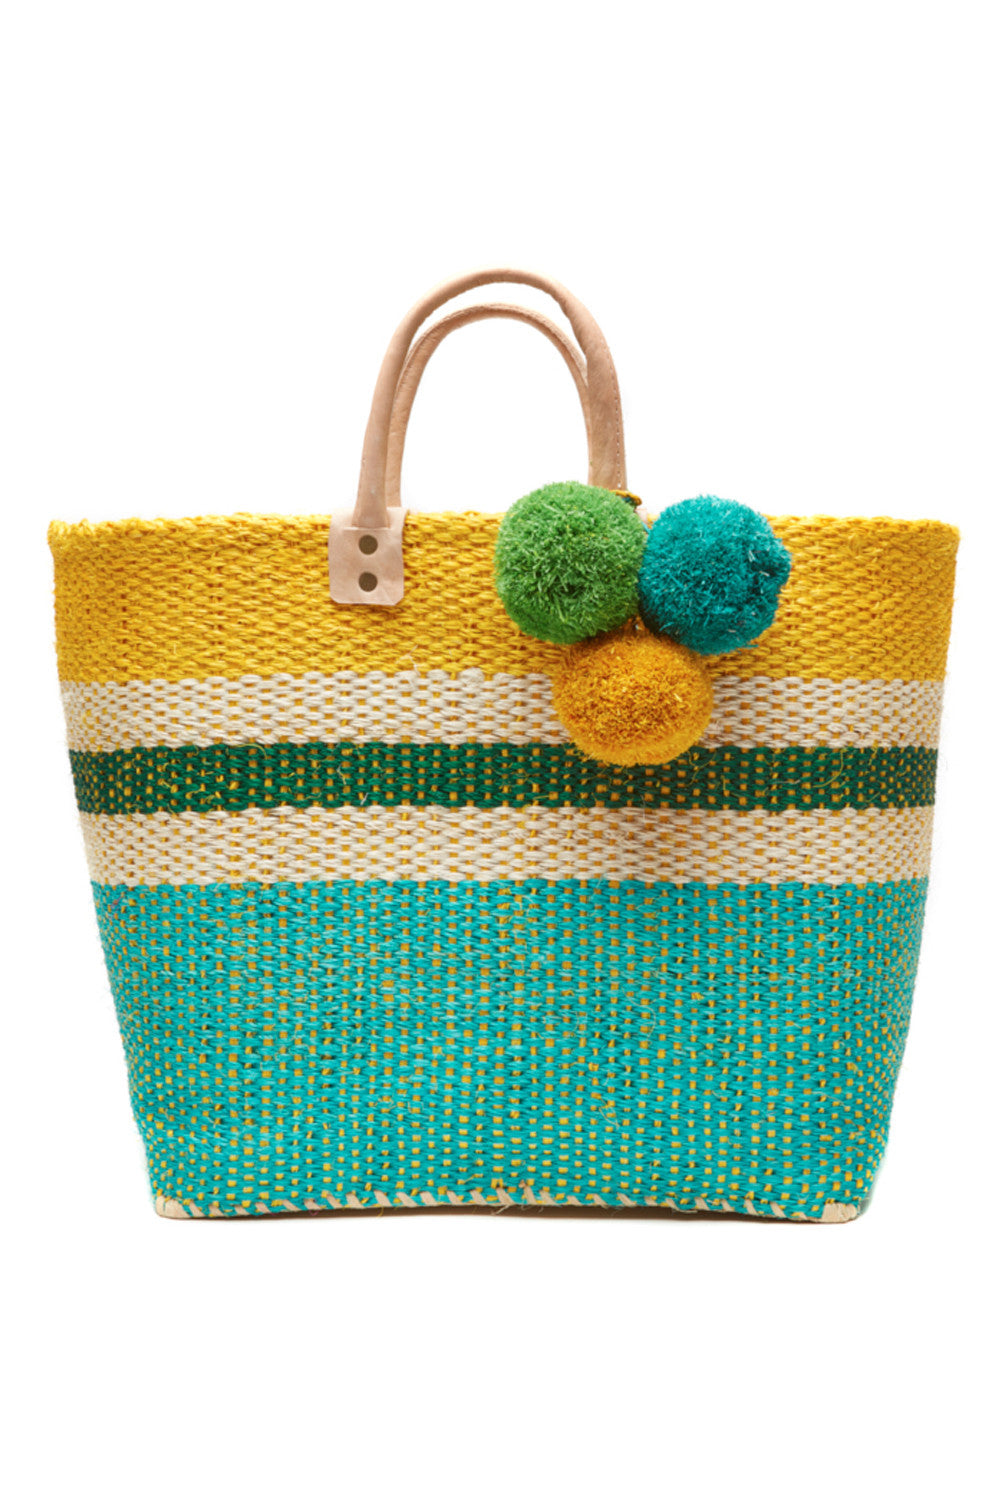 Hana Tote in Aqua & Sunflower